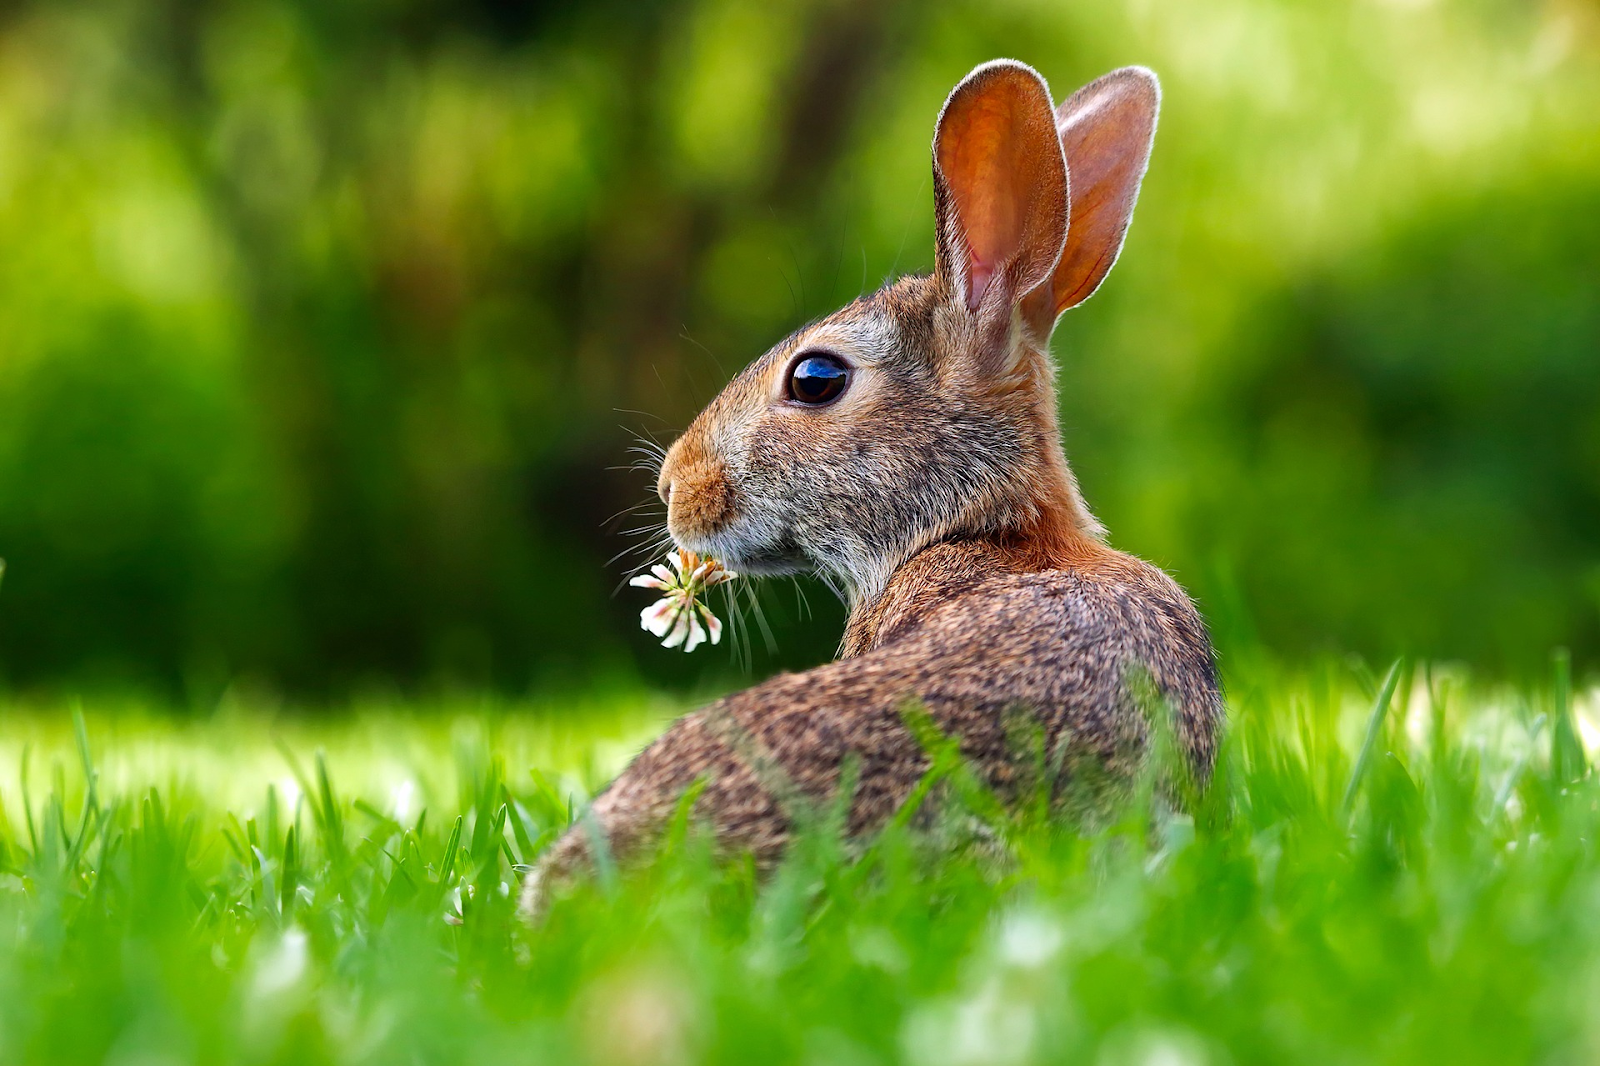 close-up of a brown bunny in a field of grass